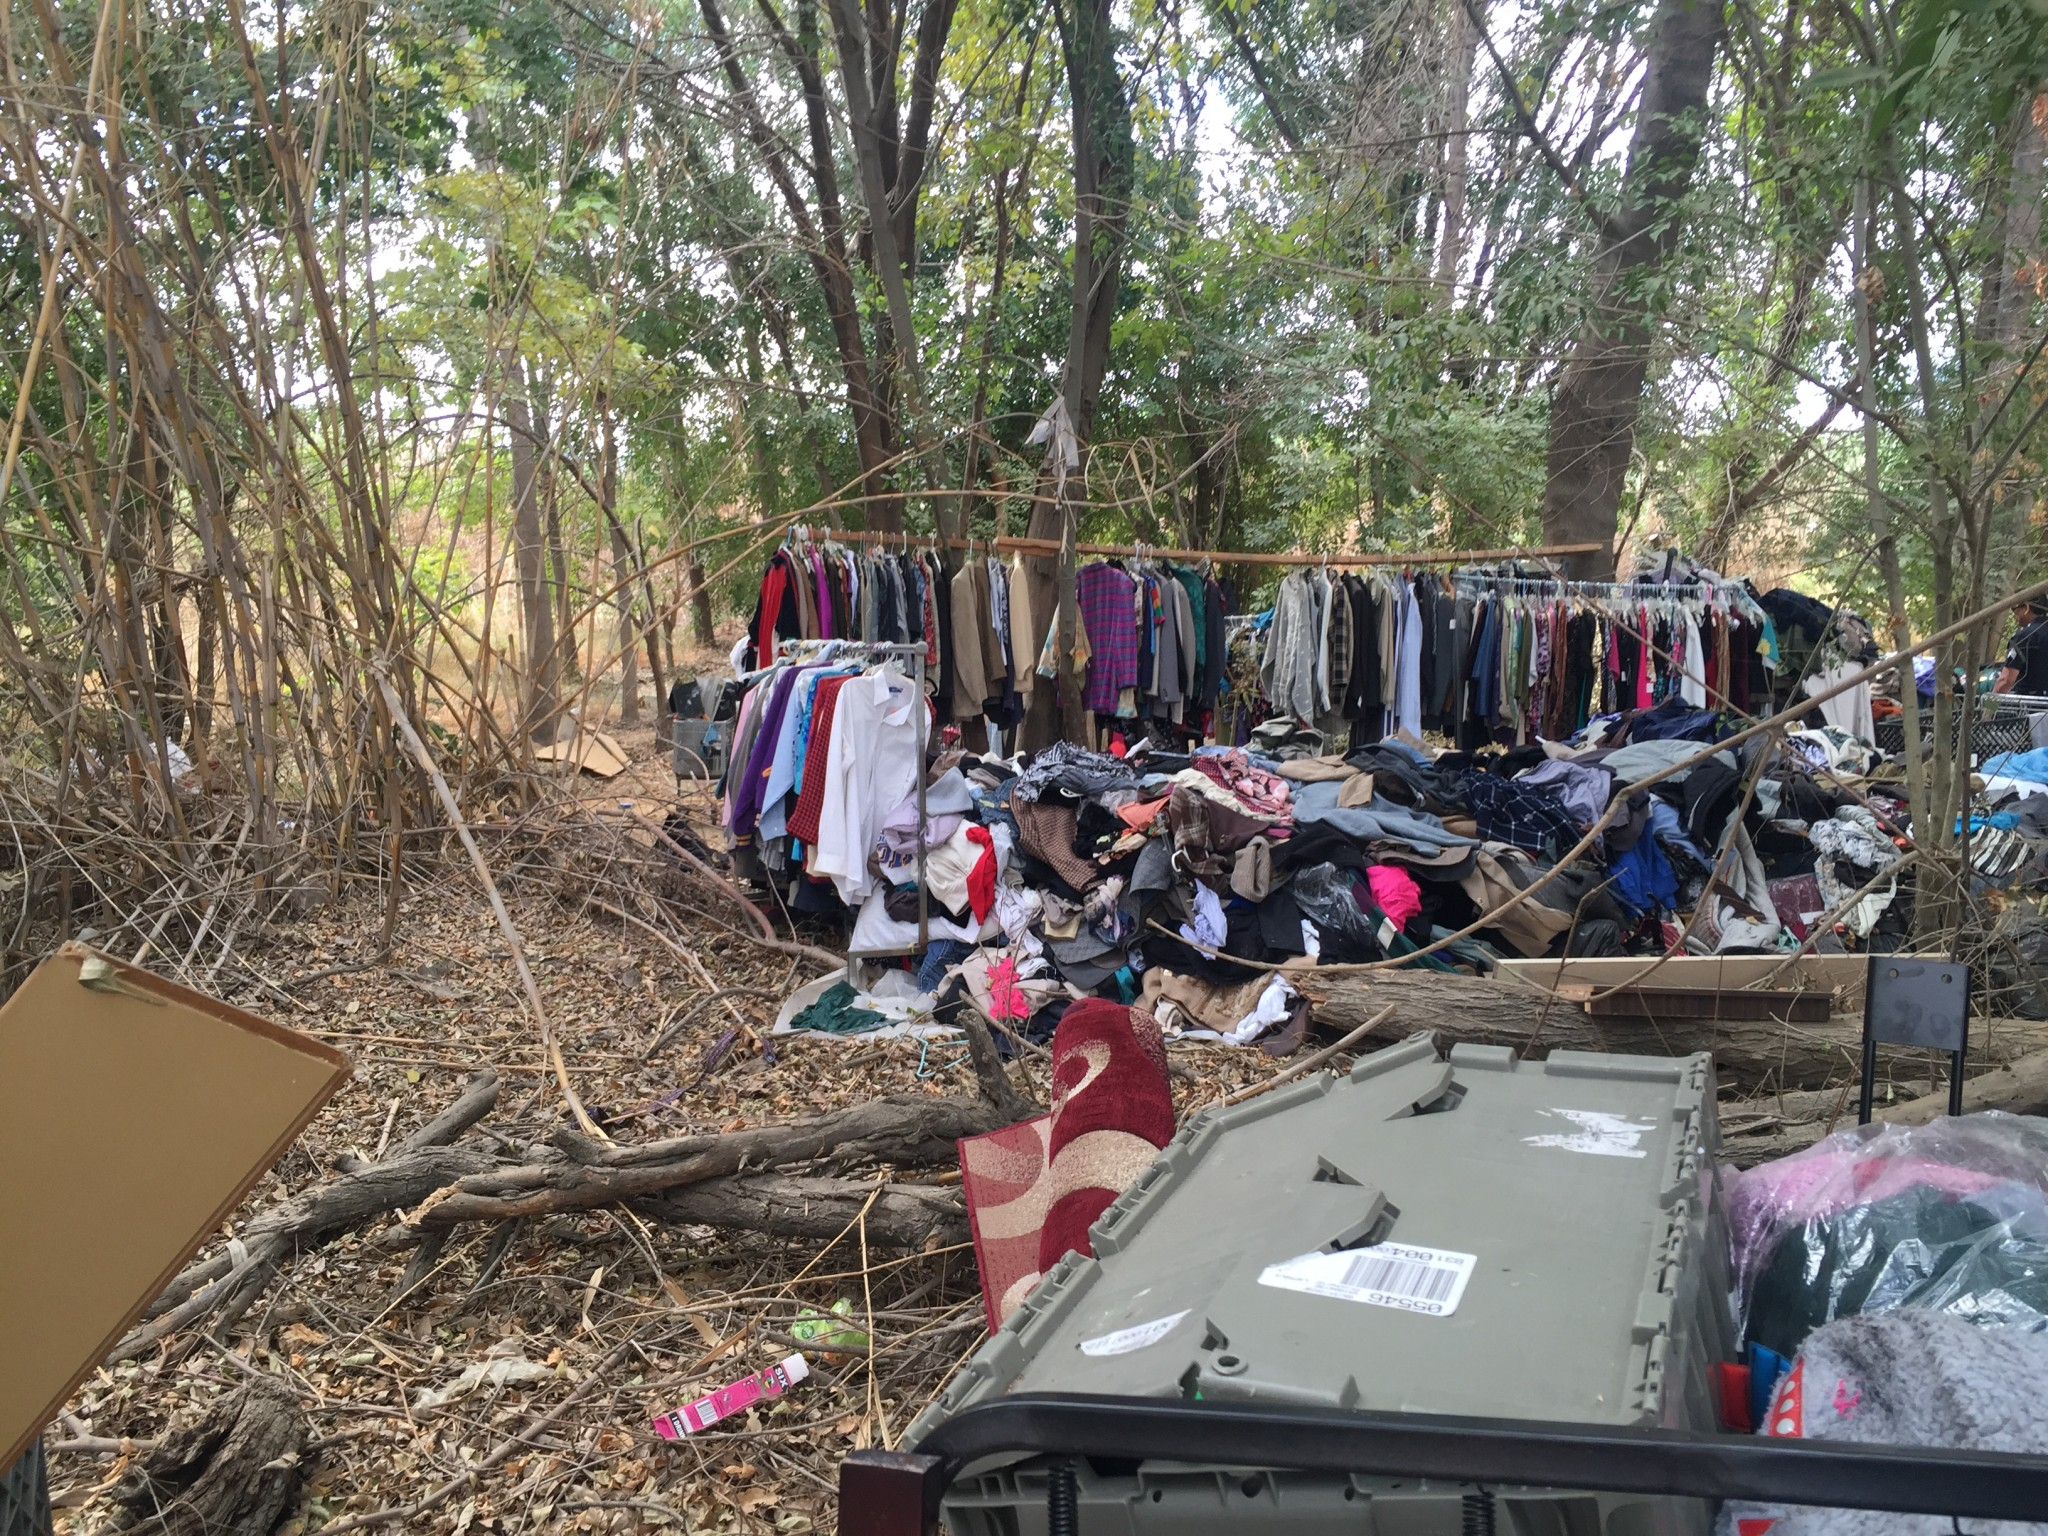 Elaborate homeless encampments in the San Fernando Valley's Sepulveda Basin. This is one of the areas that's been a focus for the LAPD's new homeless outreach teams. (Photo: Anna Scott)